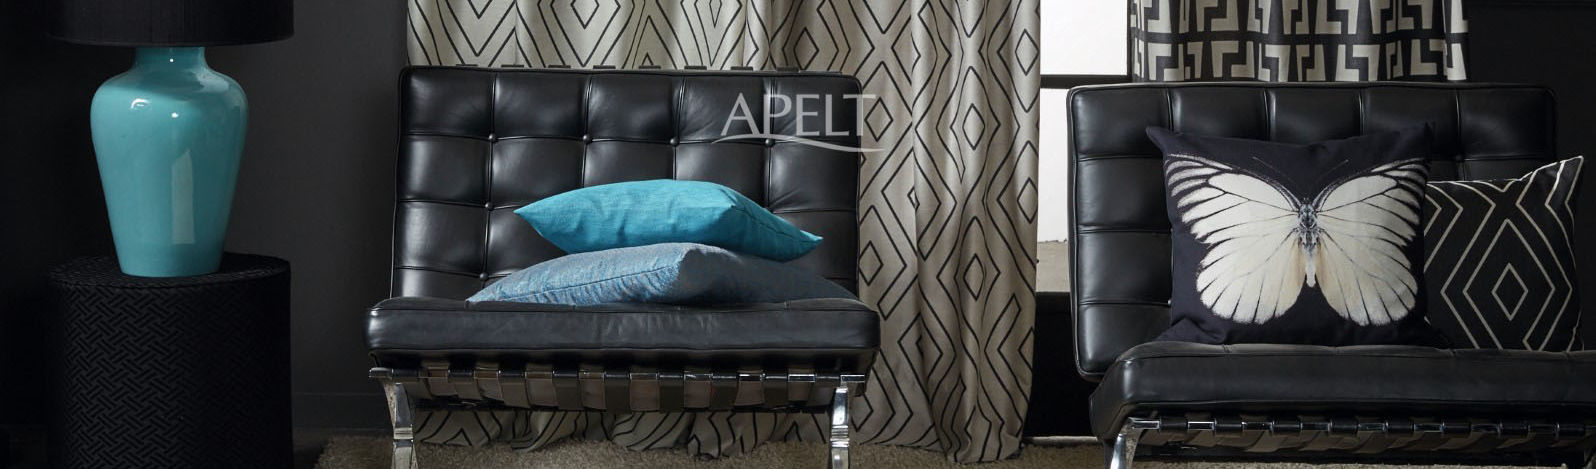 apelt stoffe textiles tapicer a en oberkirch homify. Black Bedroom Furniture Sets. Home Design Ideas